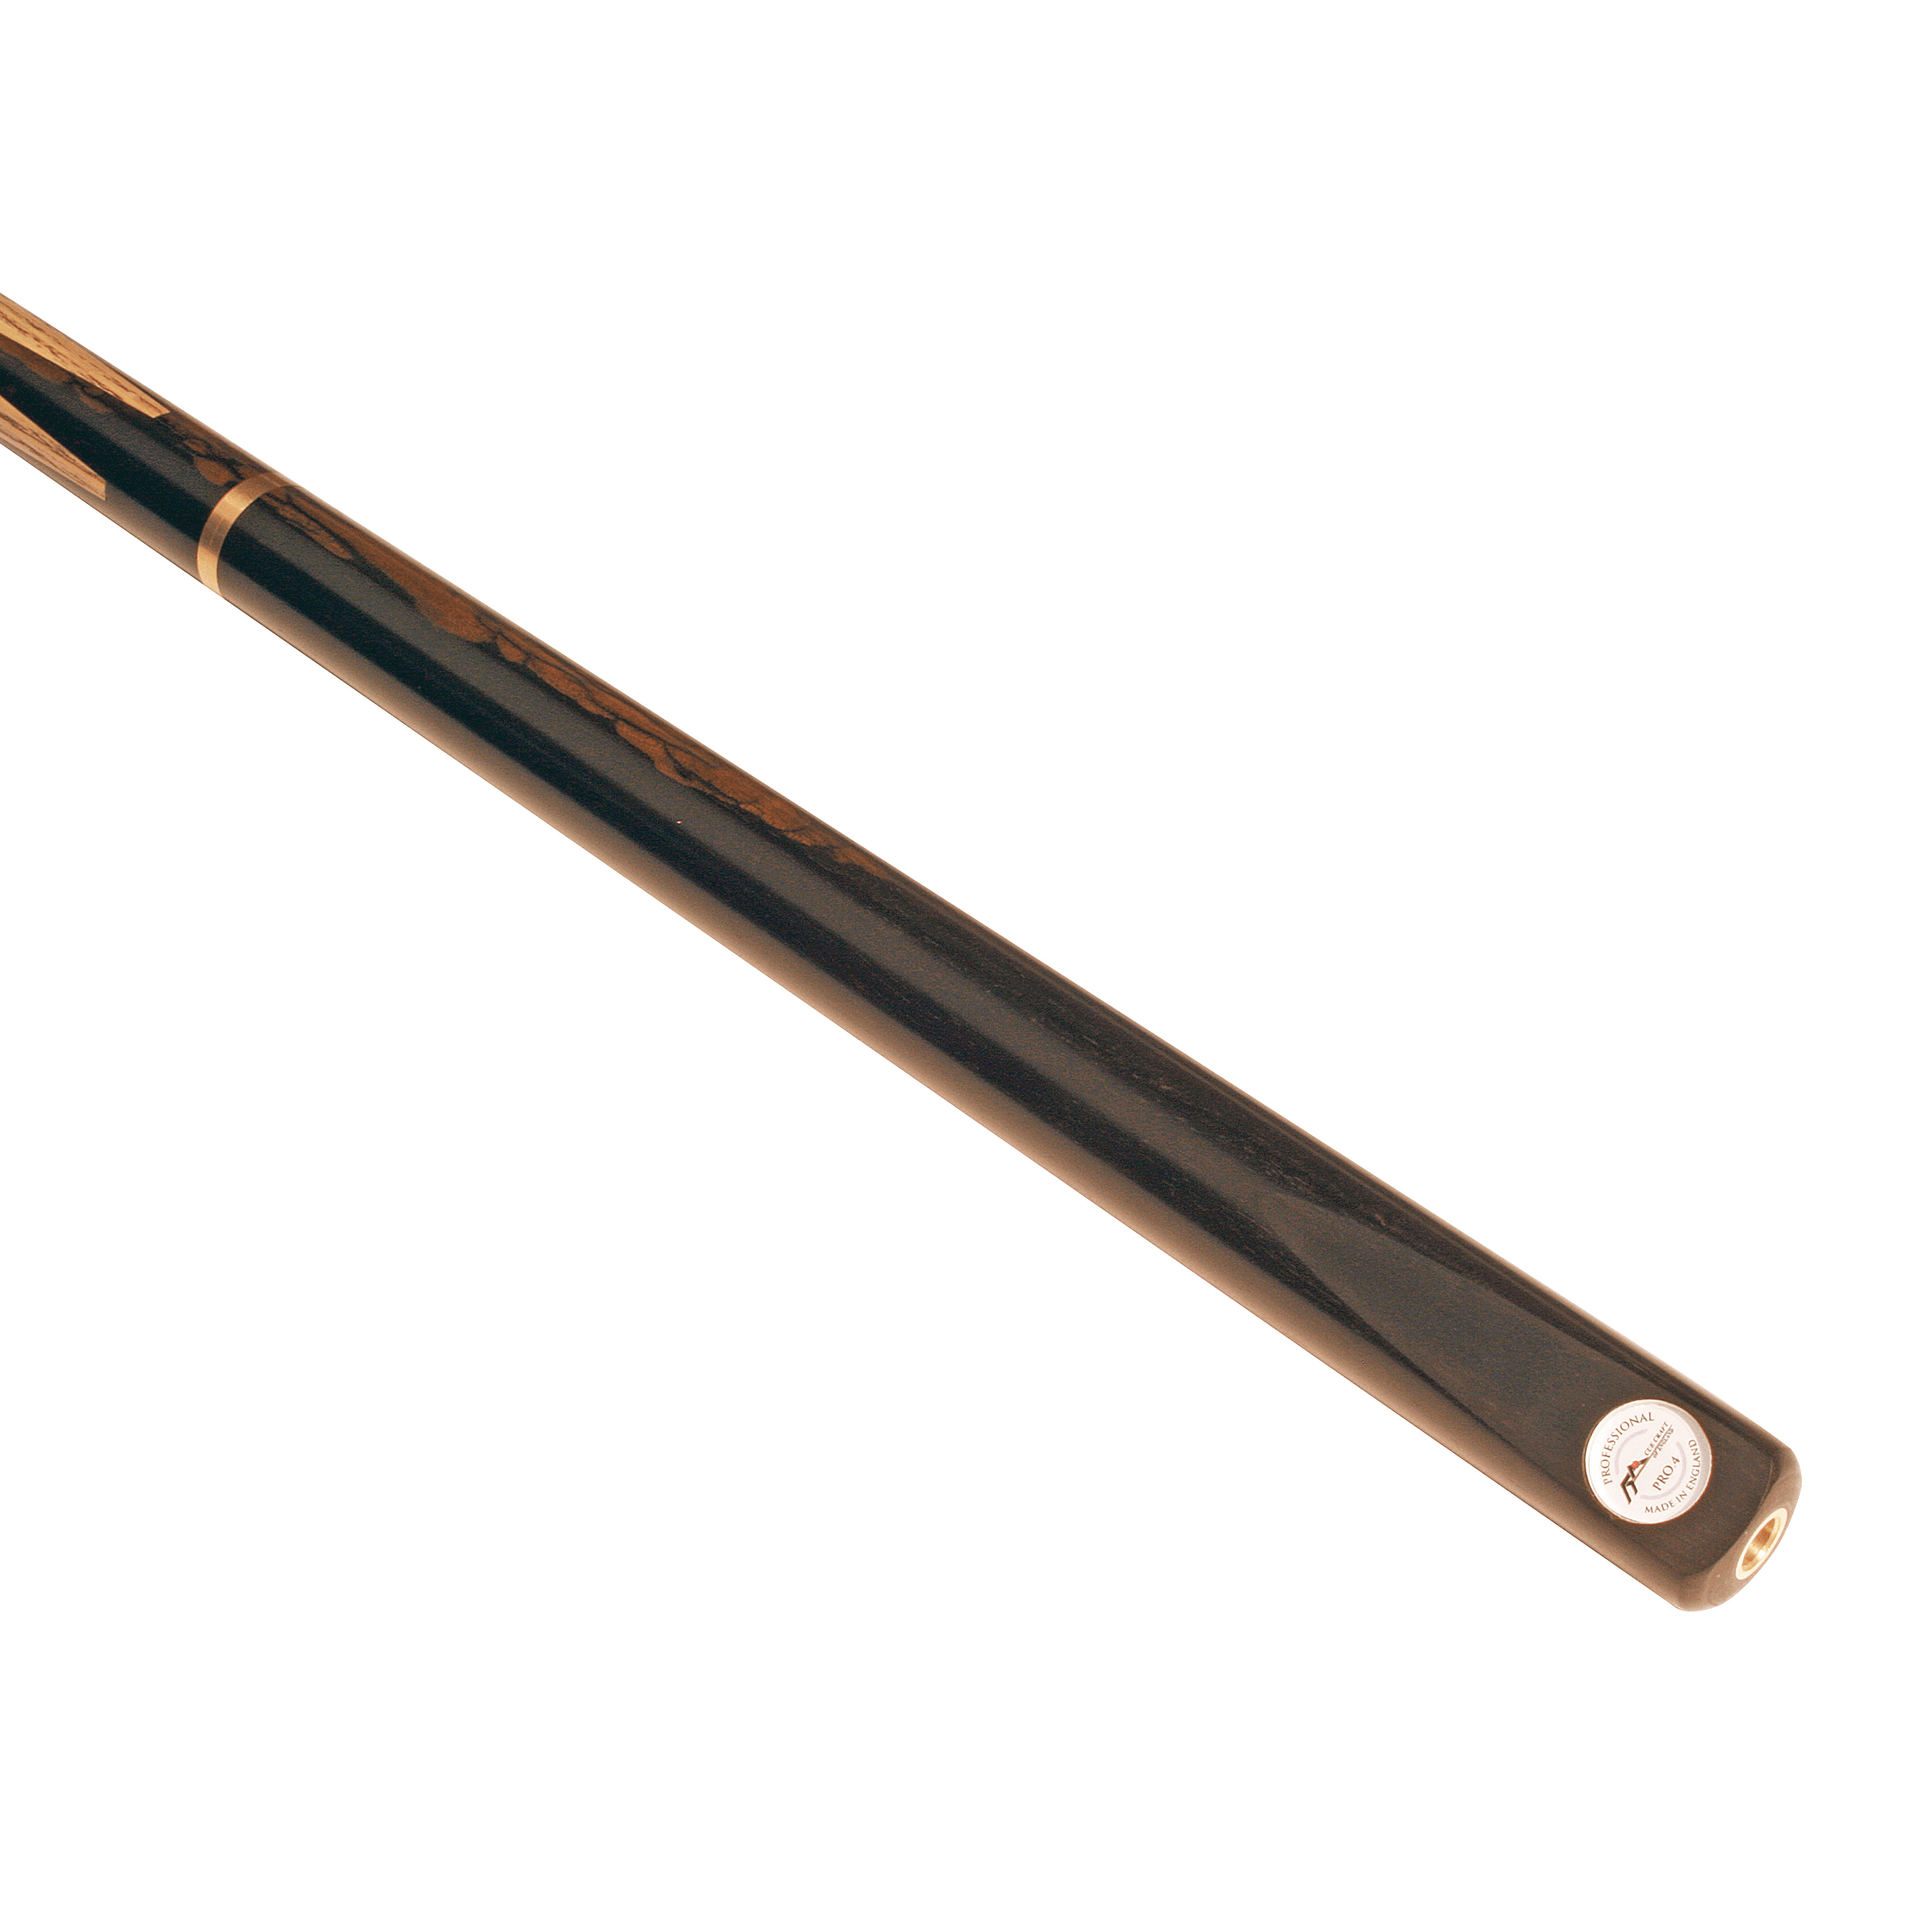 Cue Craft Pro 4 3/4 Jointed Snooker Cue